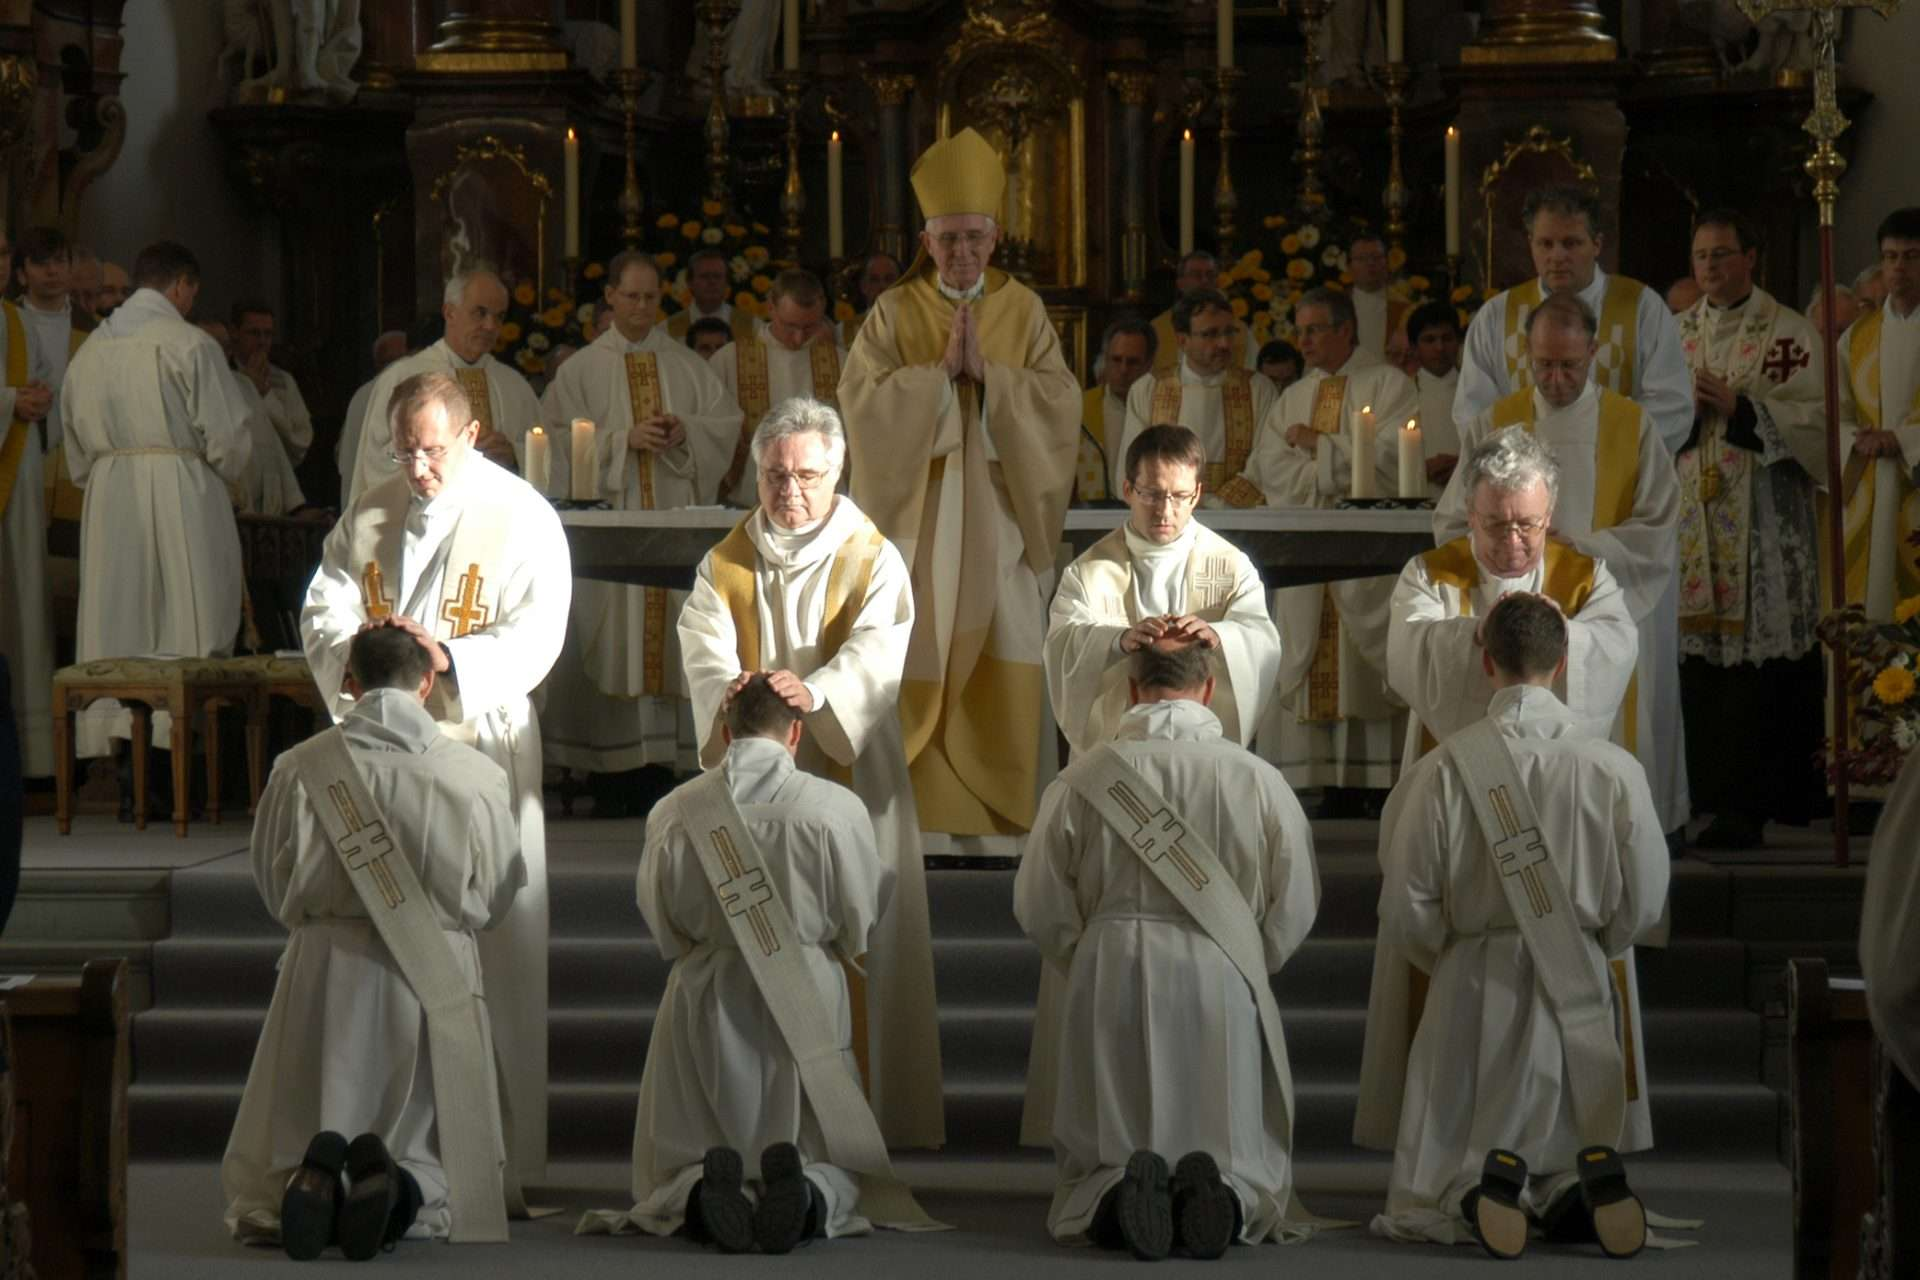 Why are only men allowed to be priests?